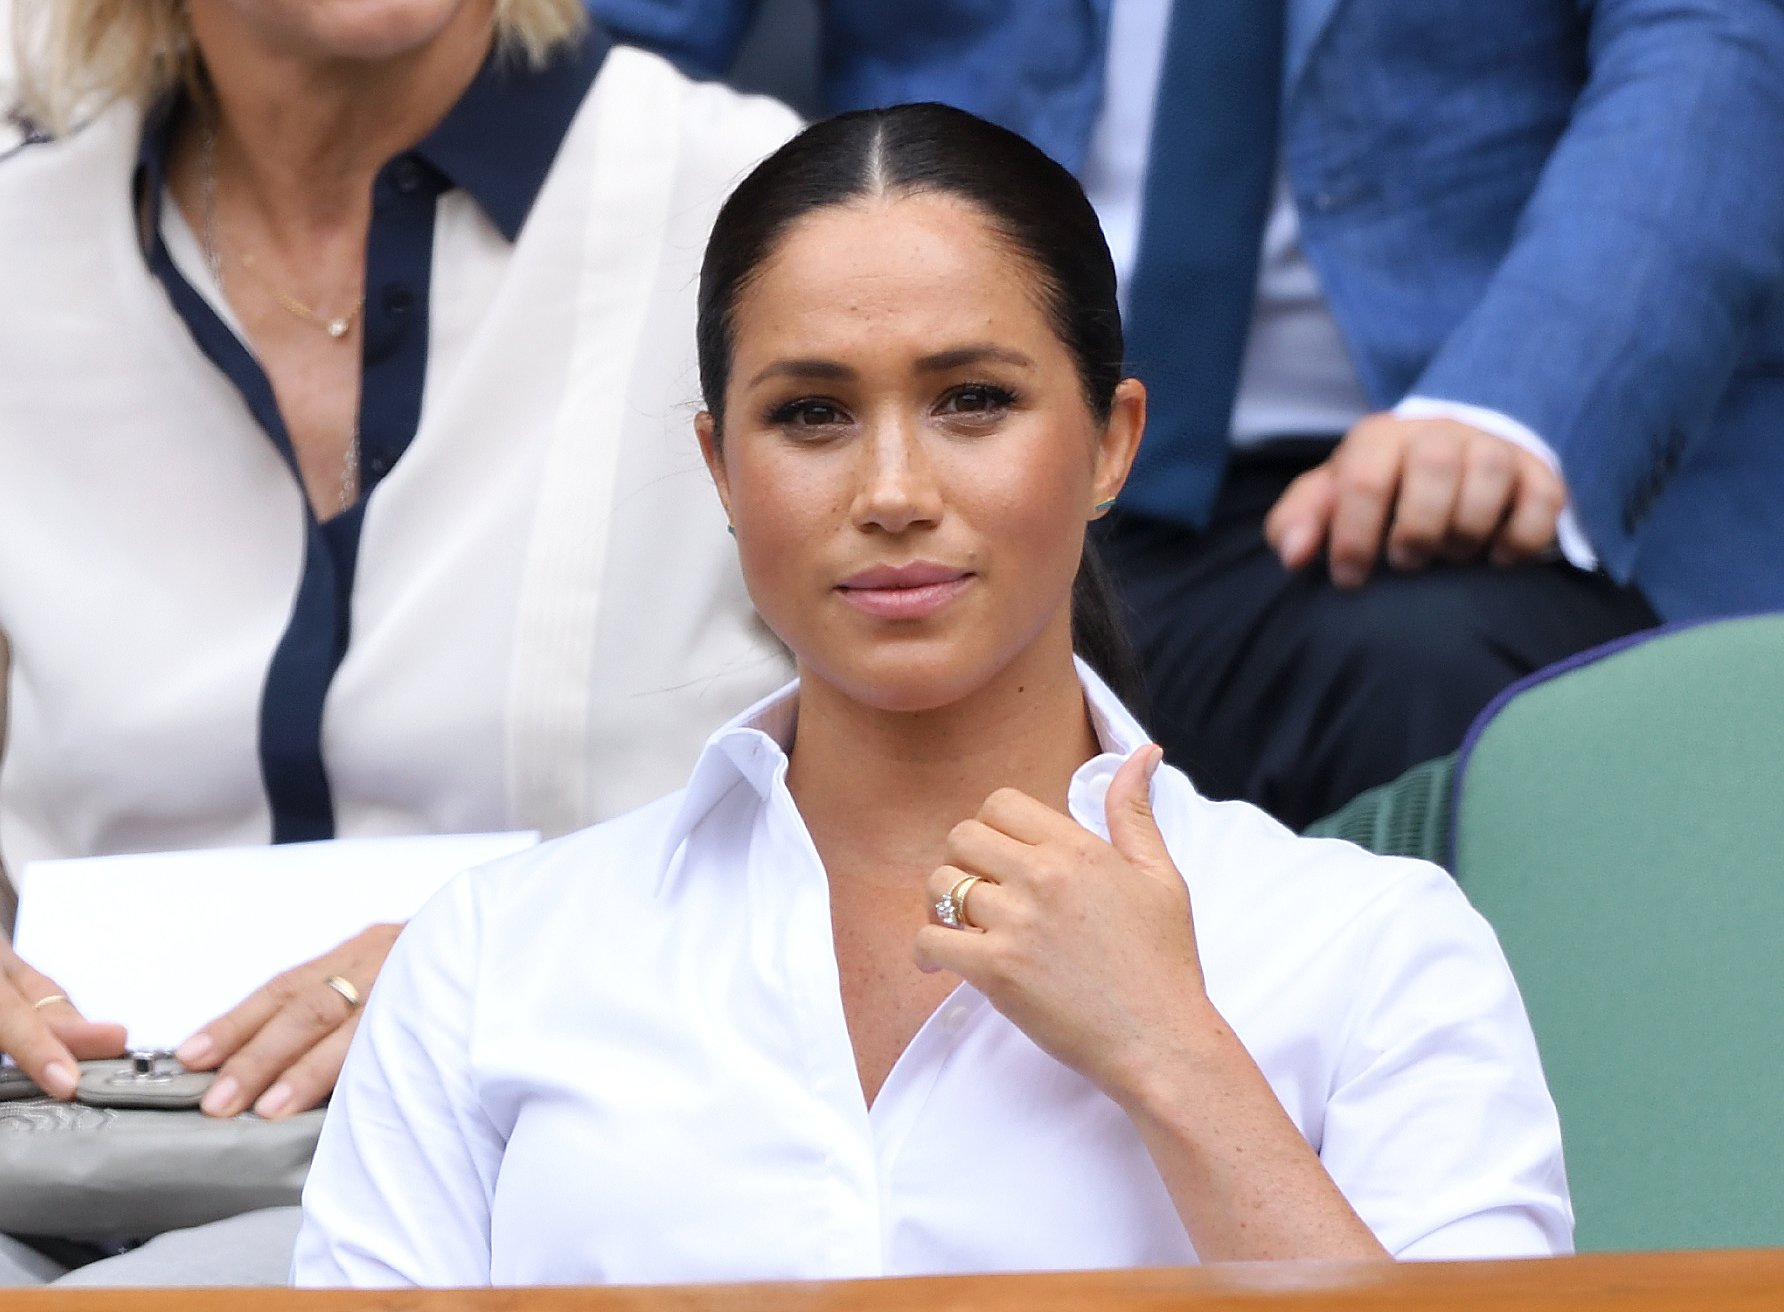 La duchesse Meghan Markle à la finale de Wimbledon | Photo : Getty Images